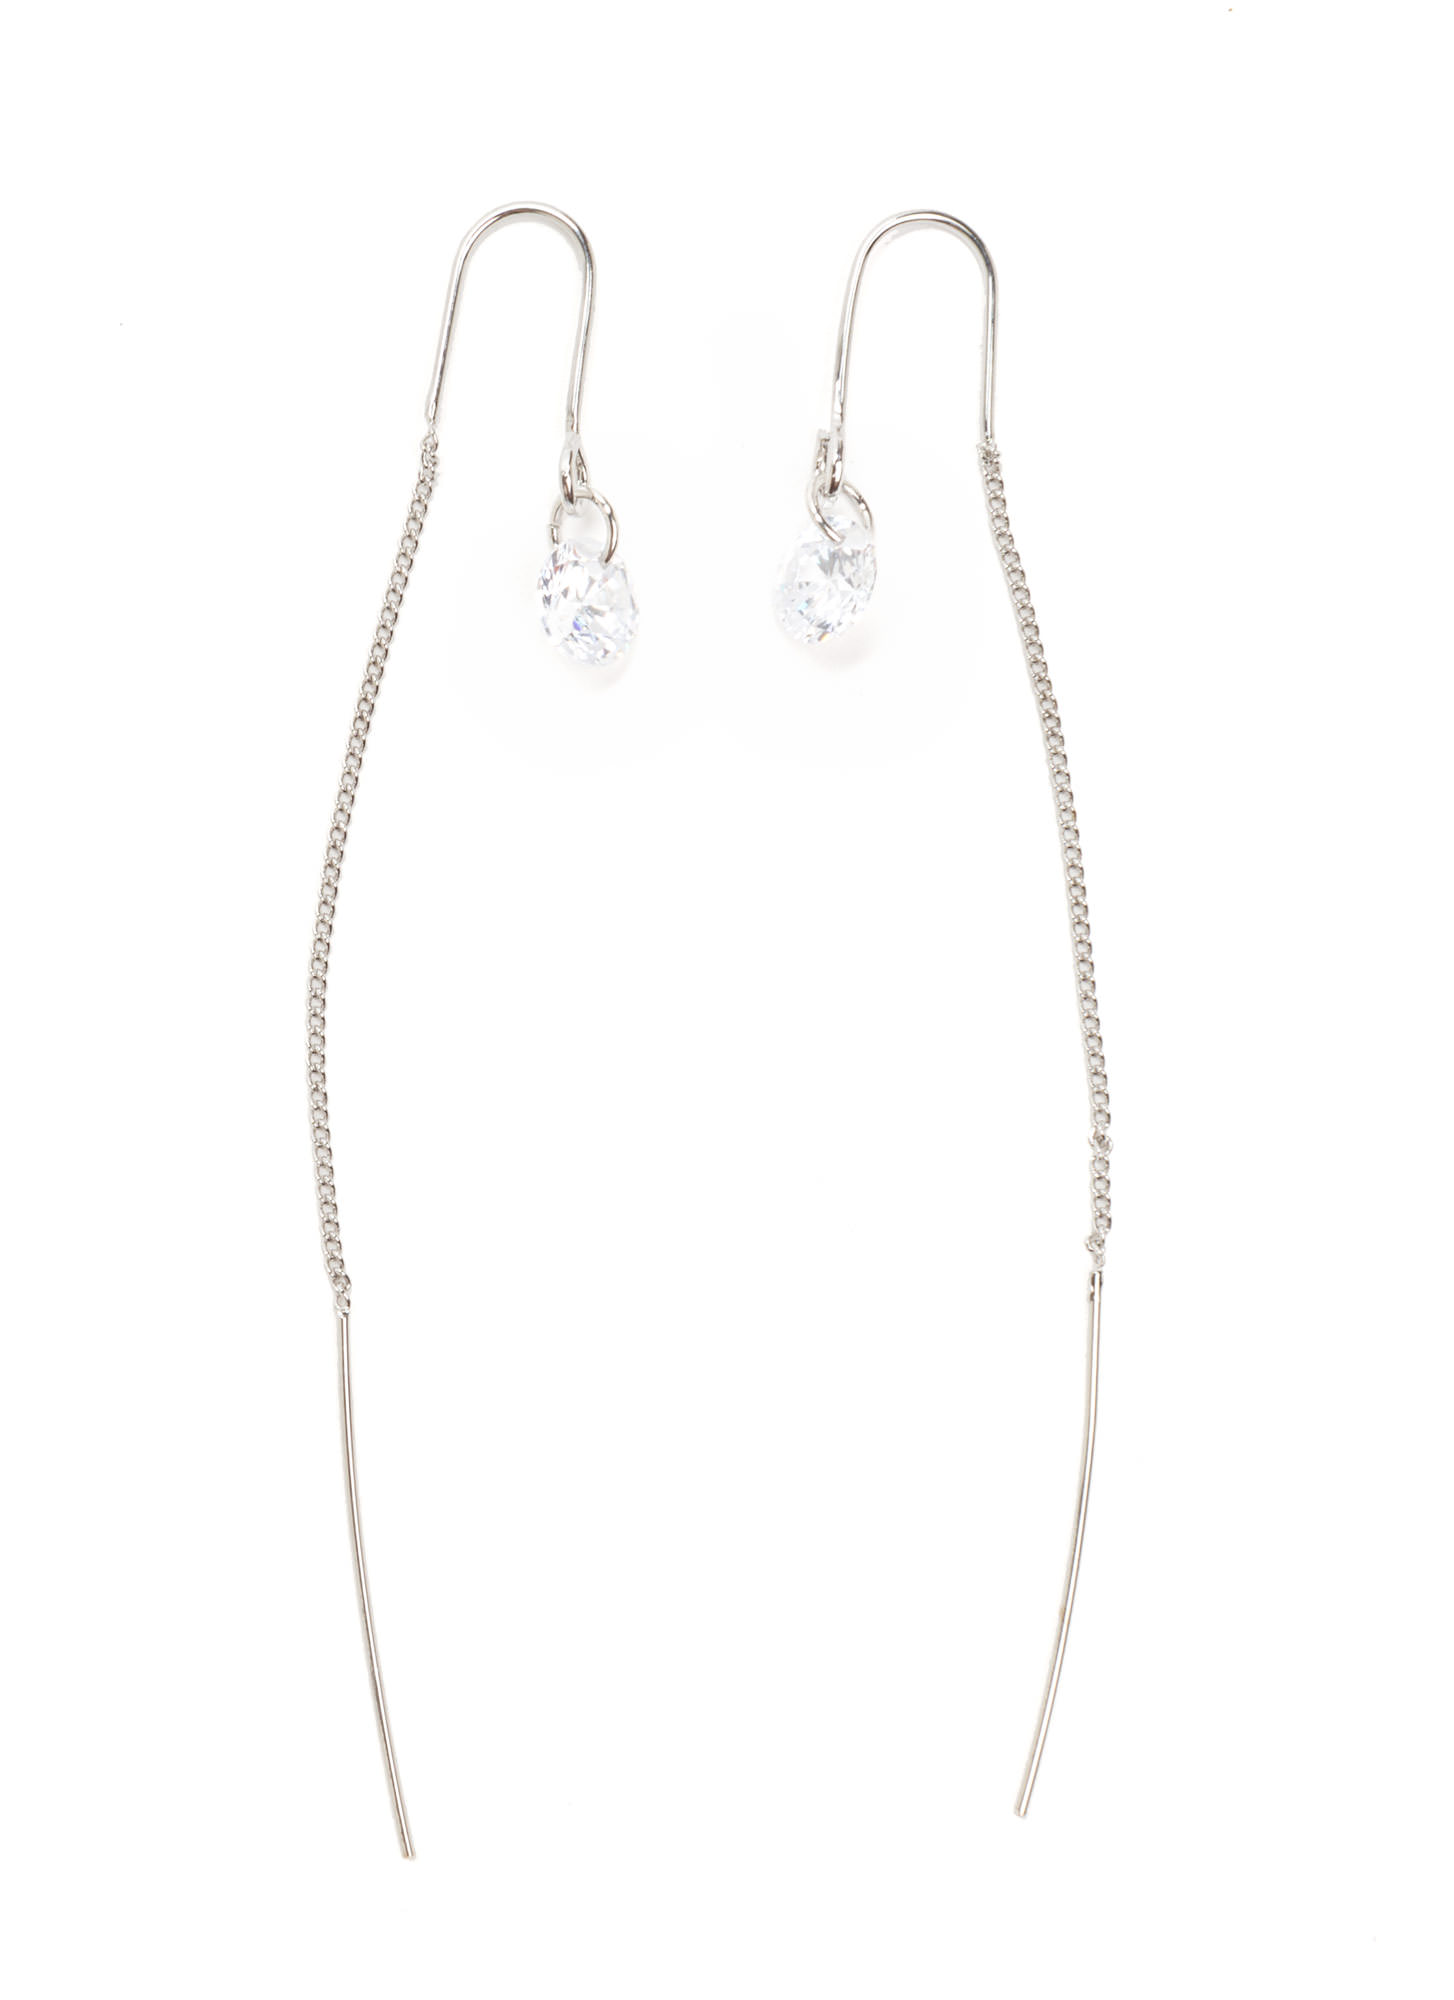 Threader The Better Jeweled Earrings  SILVERCLEAR